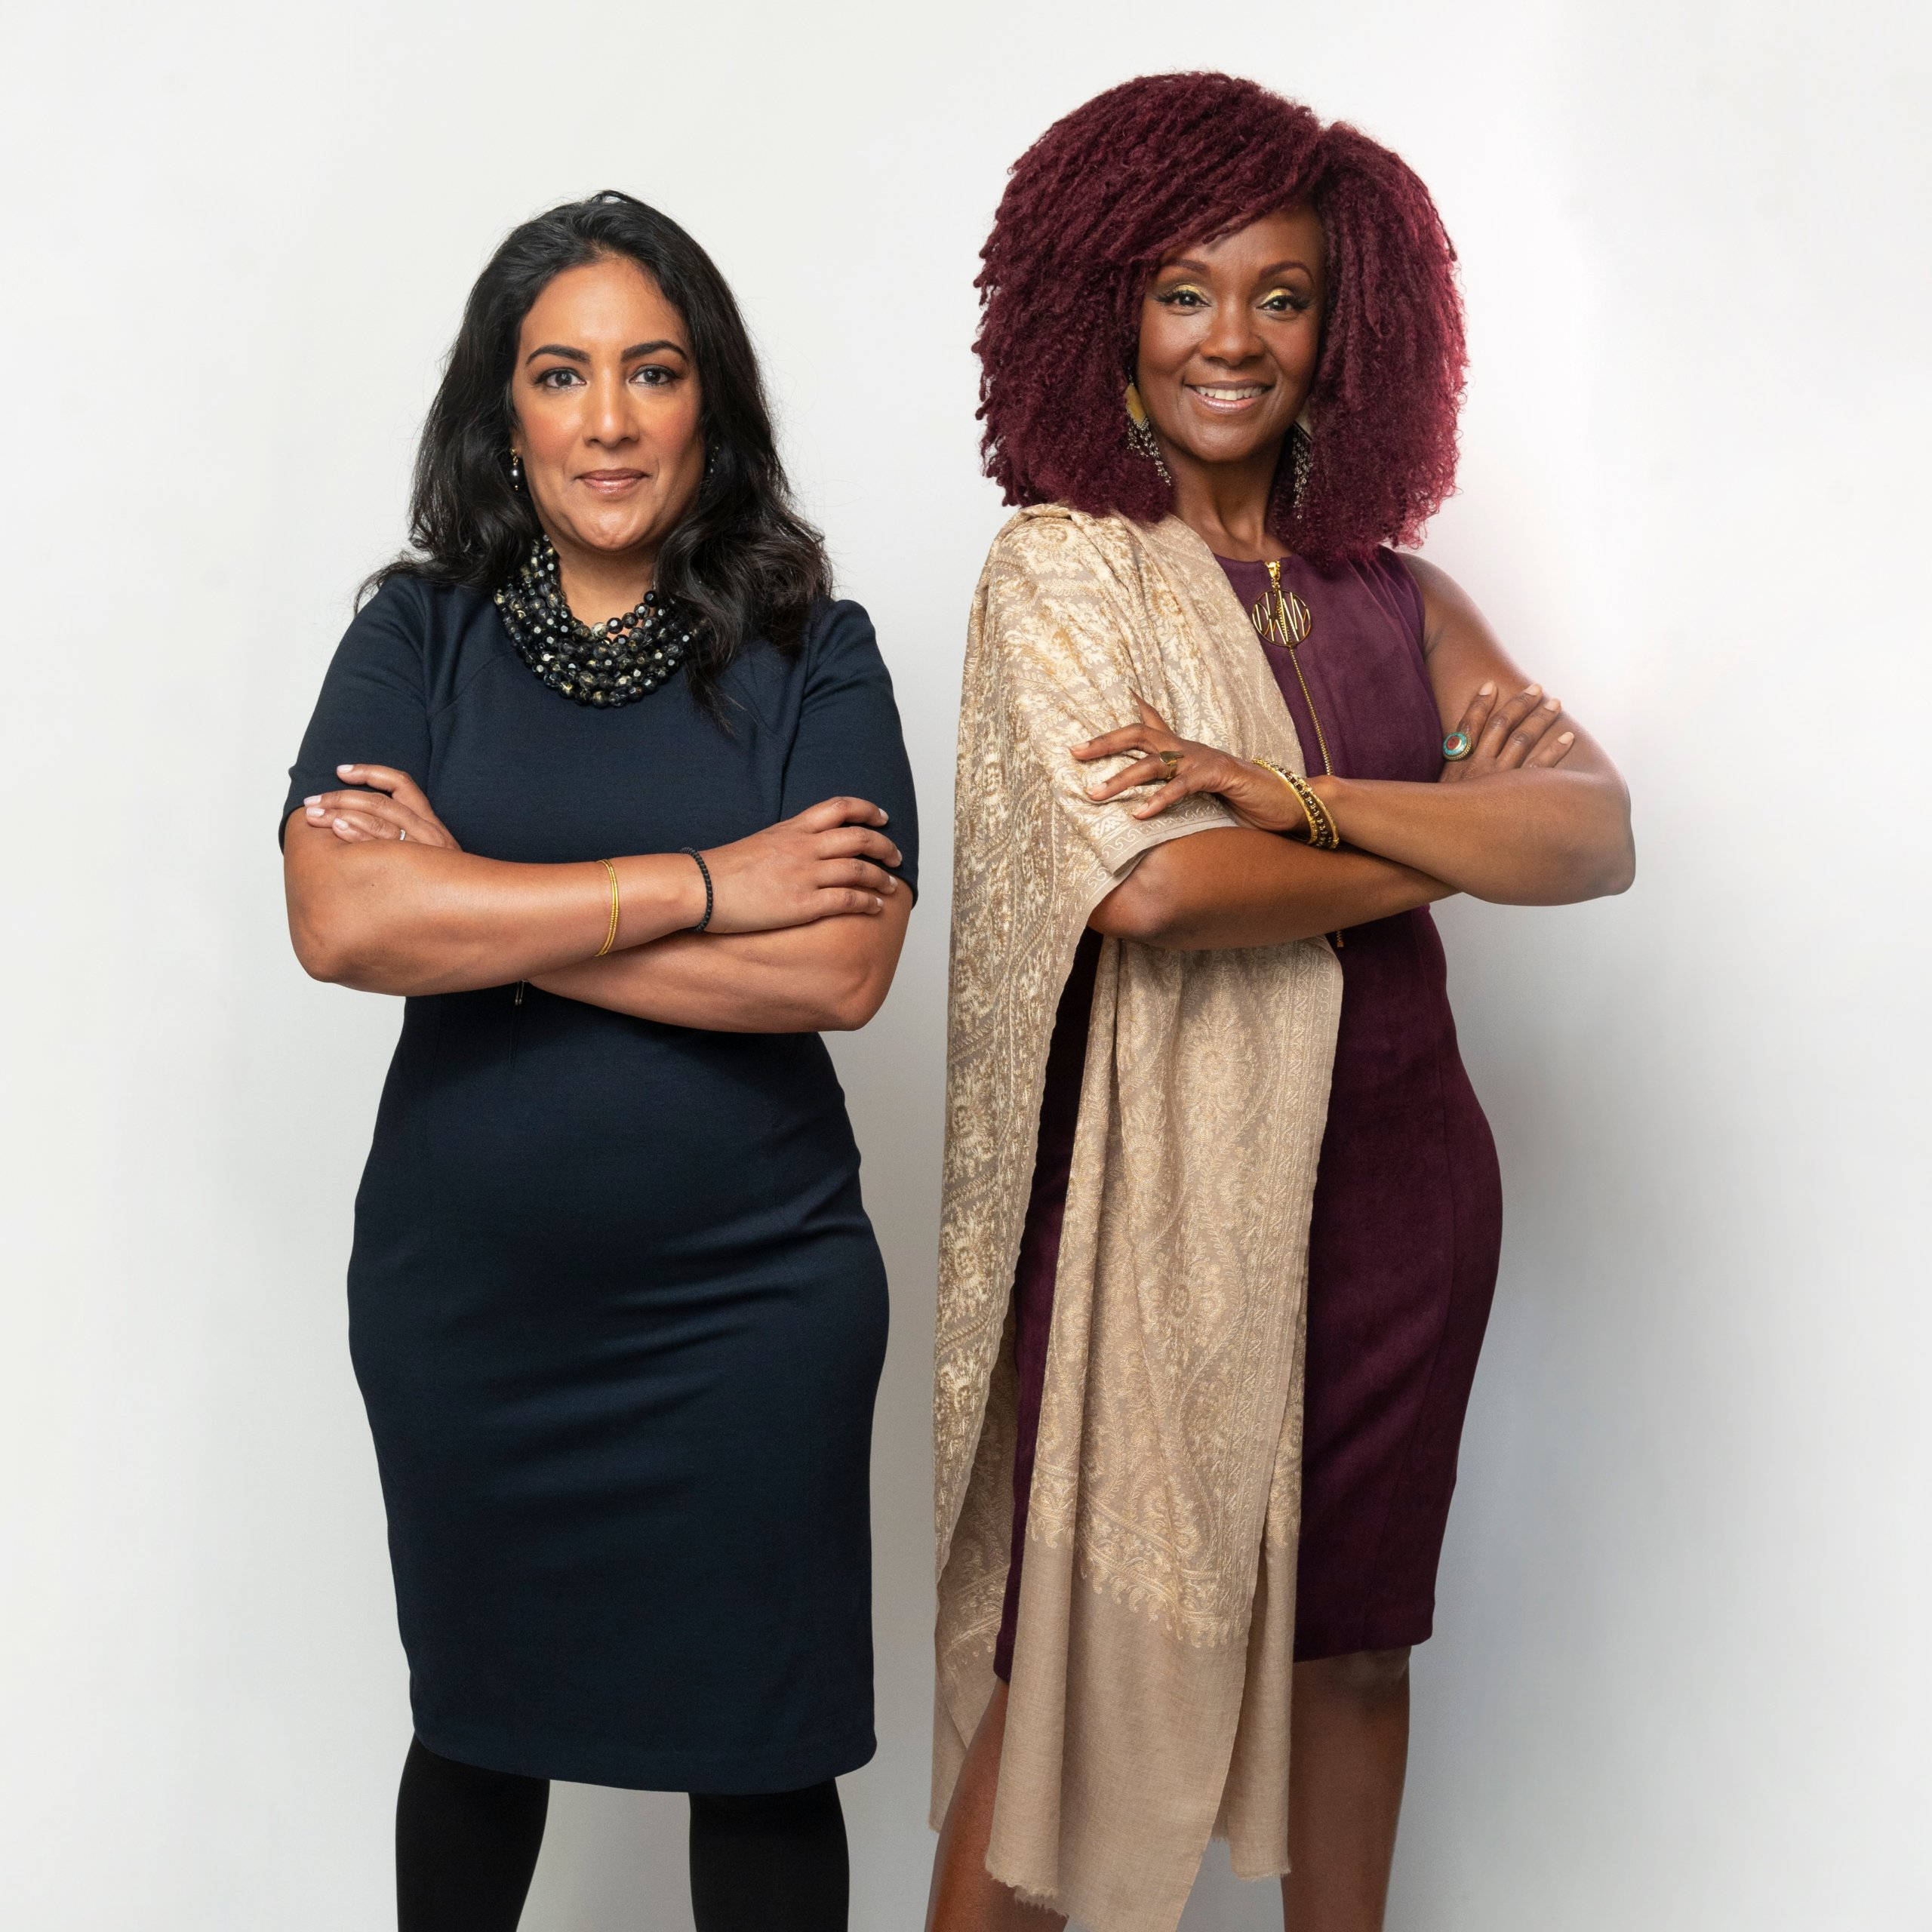 Deepa Purushothaman, an Indian-American woman with black hair and beaded necklace, and Rha Goddess, a Black woman with burgundy hair and gold shawl.